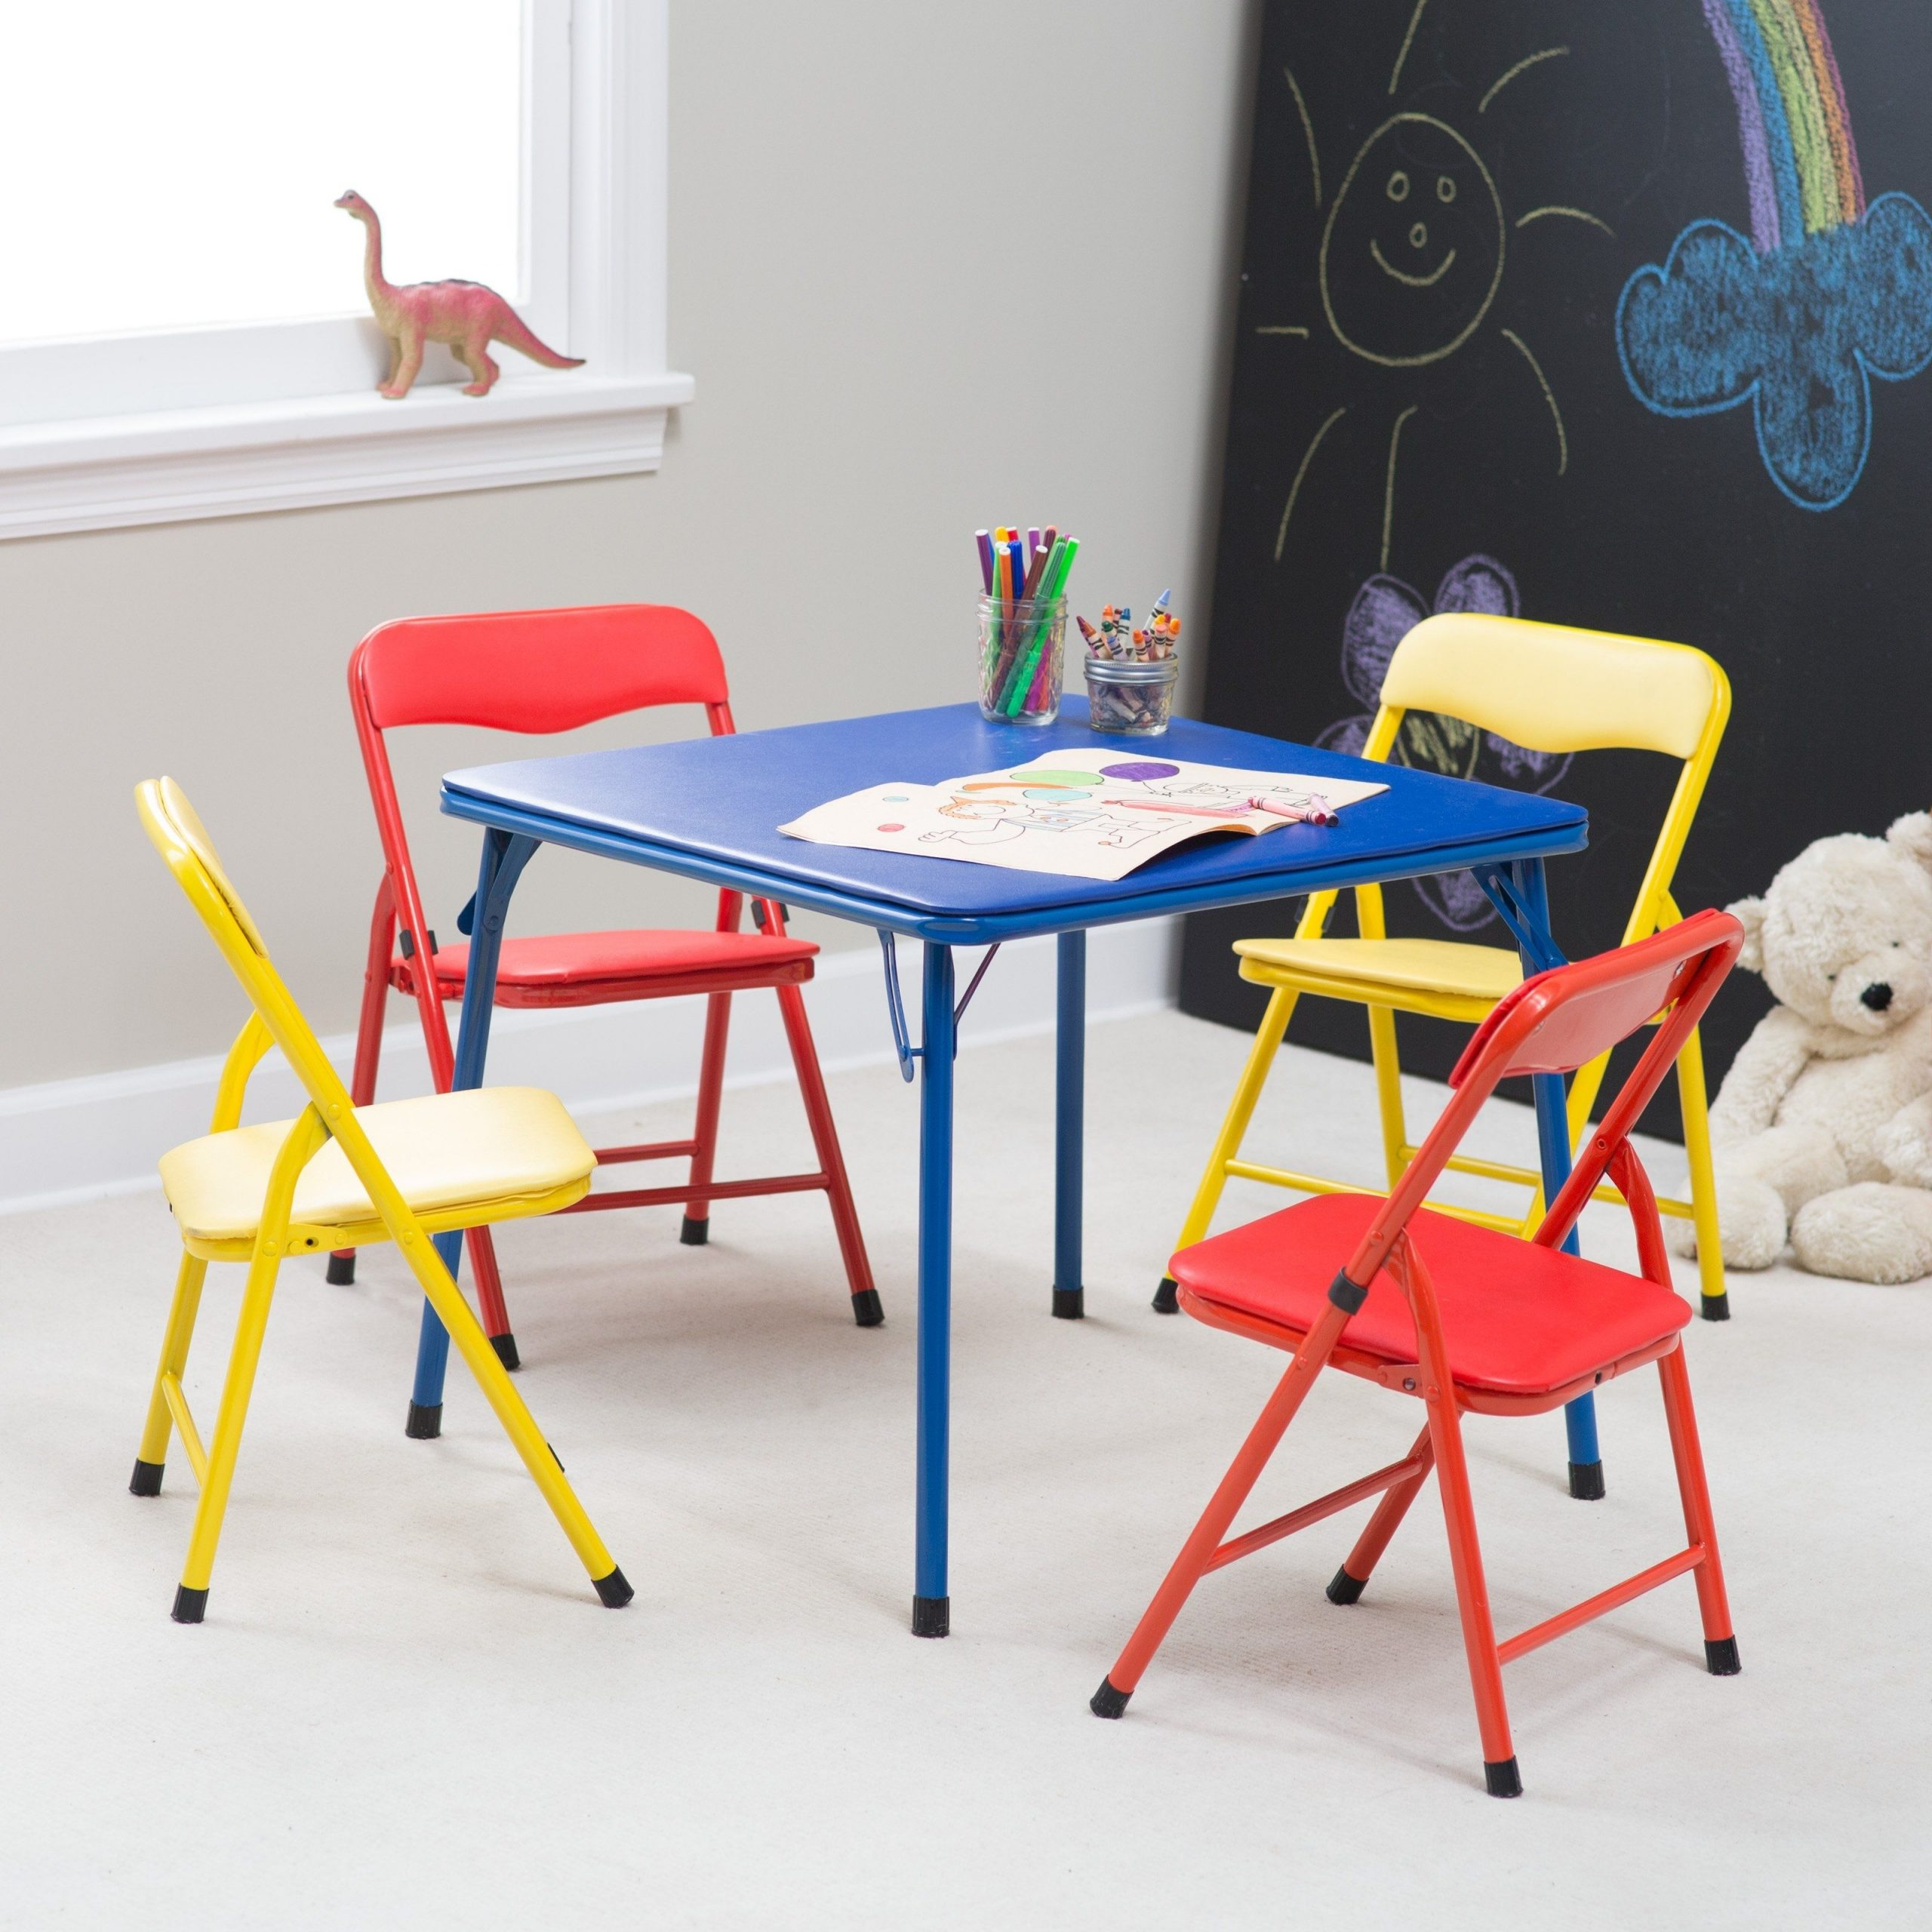 Stakmore Childrens Folding Table And Chairs Display Cabinet